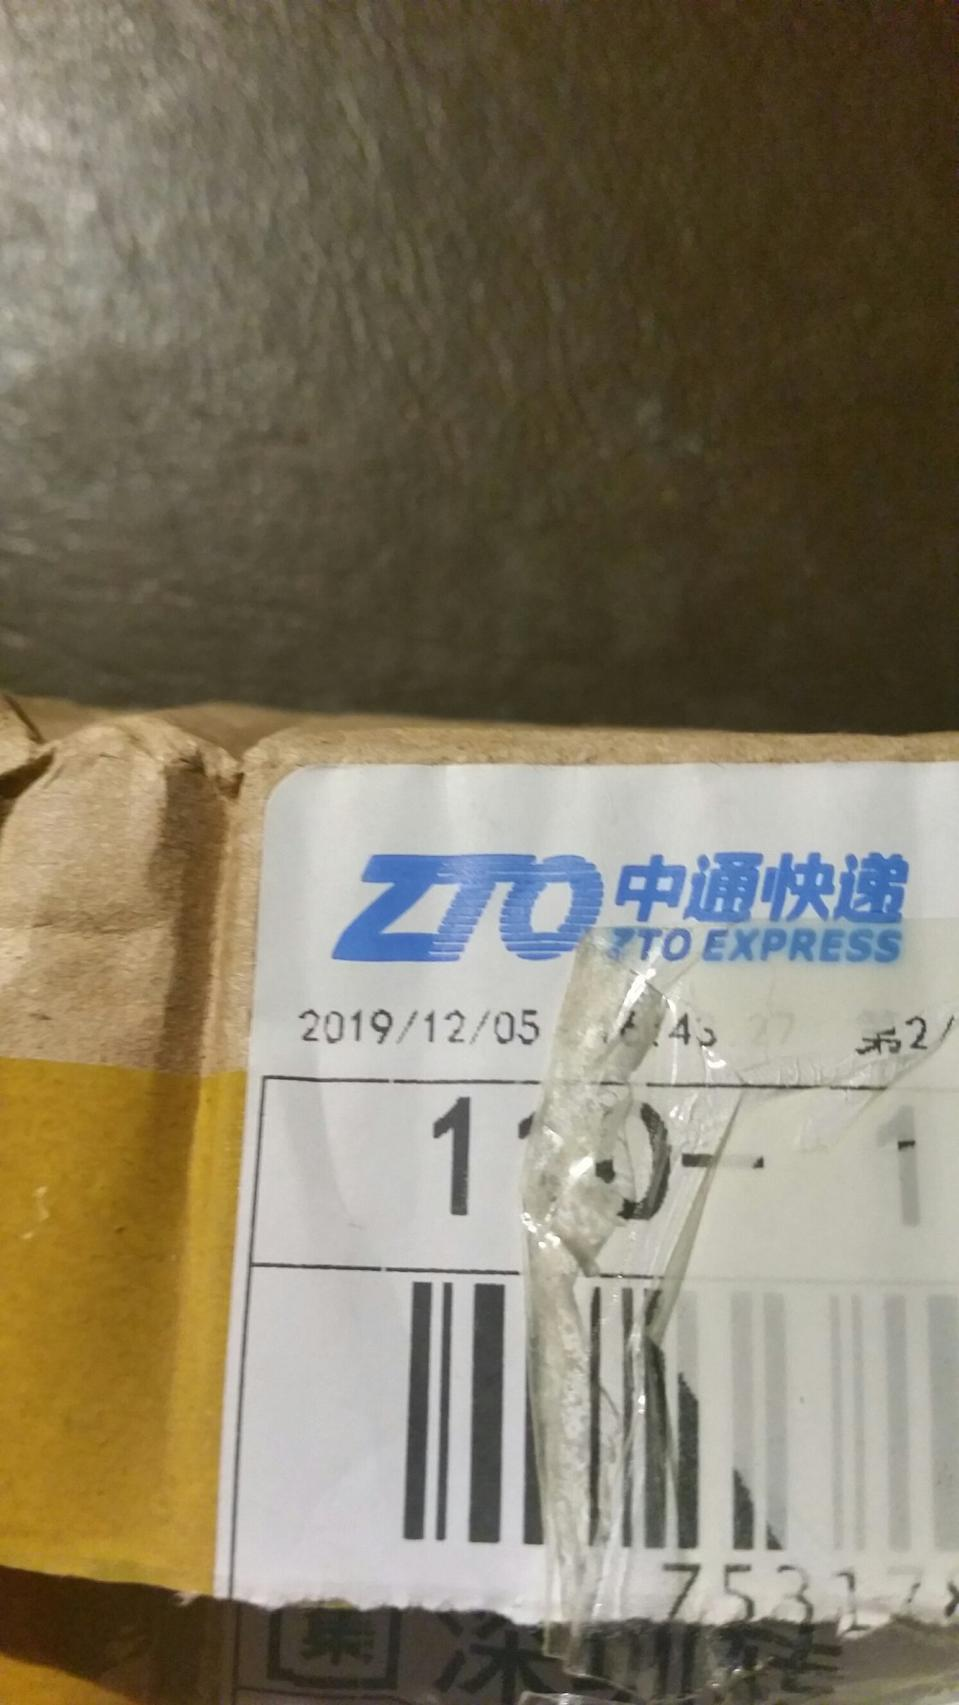 The package states it was sent on December 5 last year. Source: Facebook